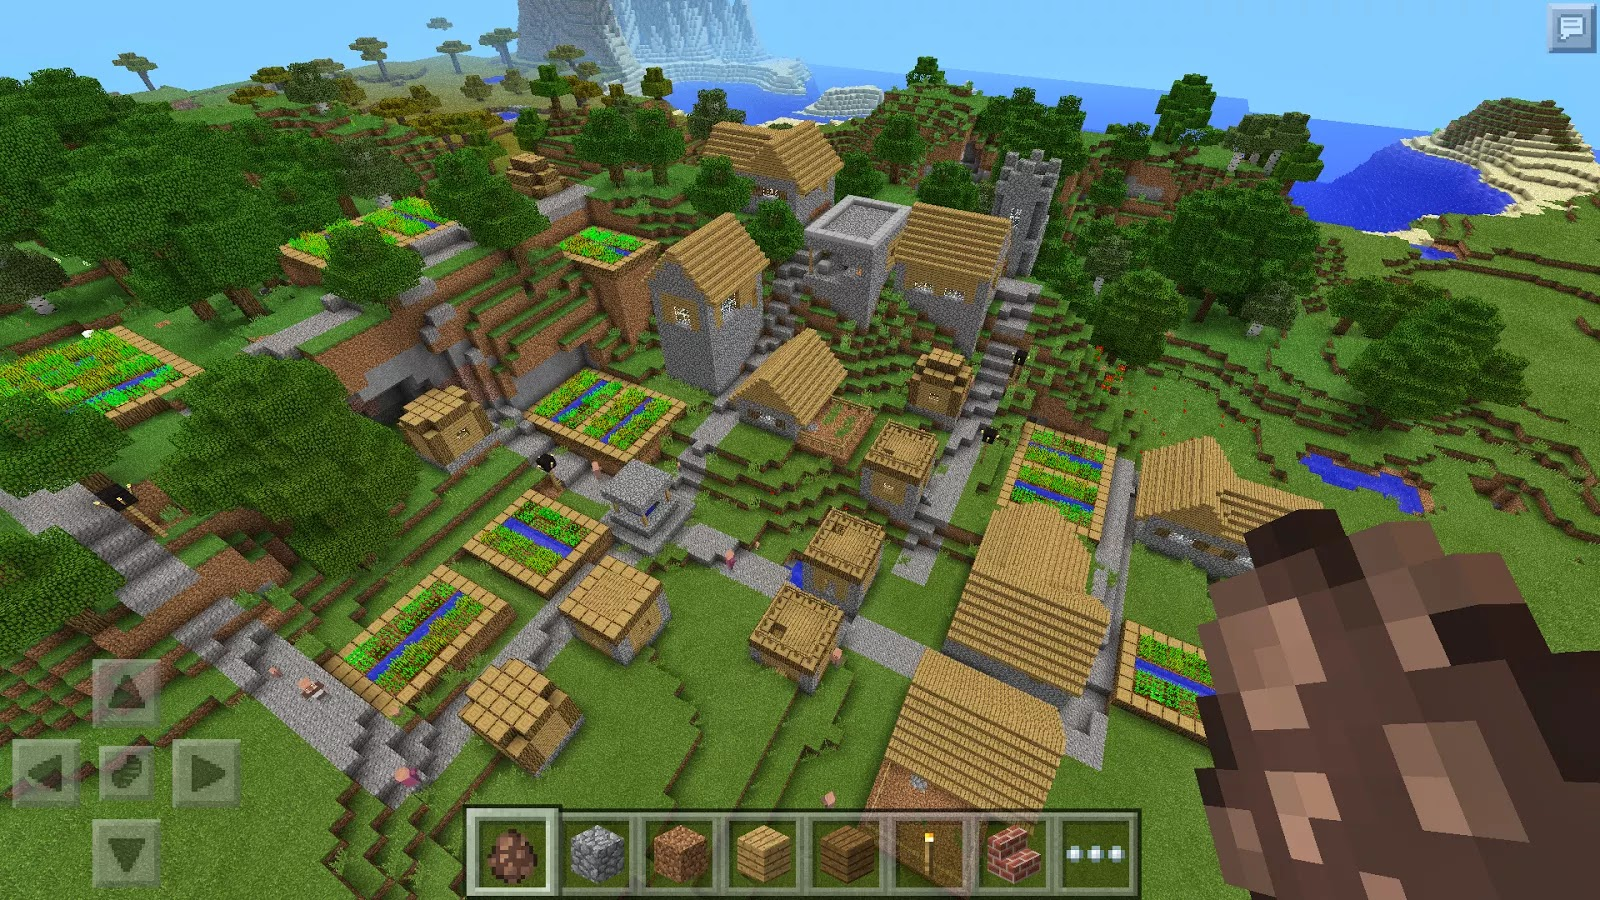 Minecraft - Pocket Edition v0.11.0 Build 13